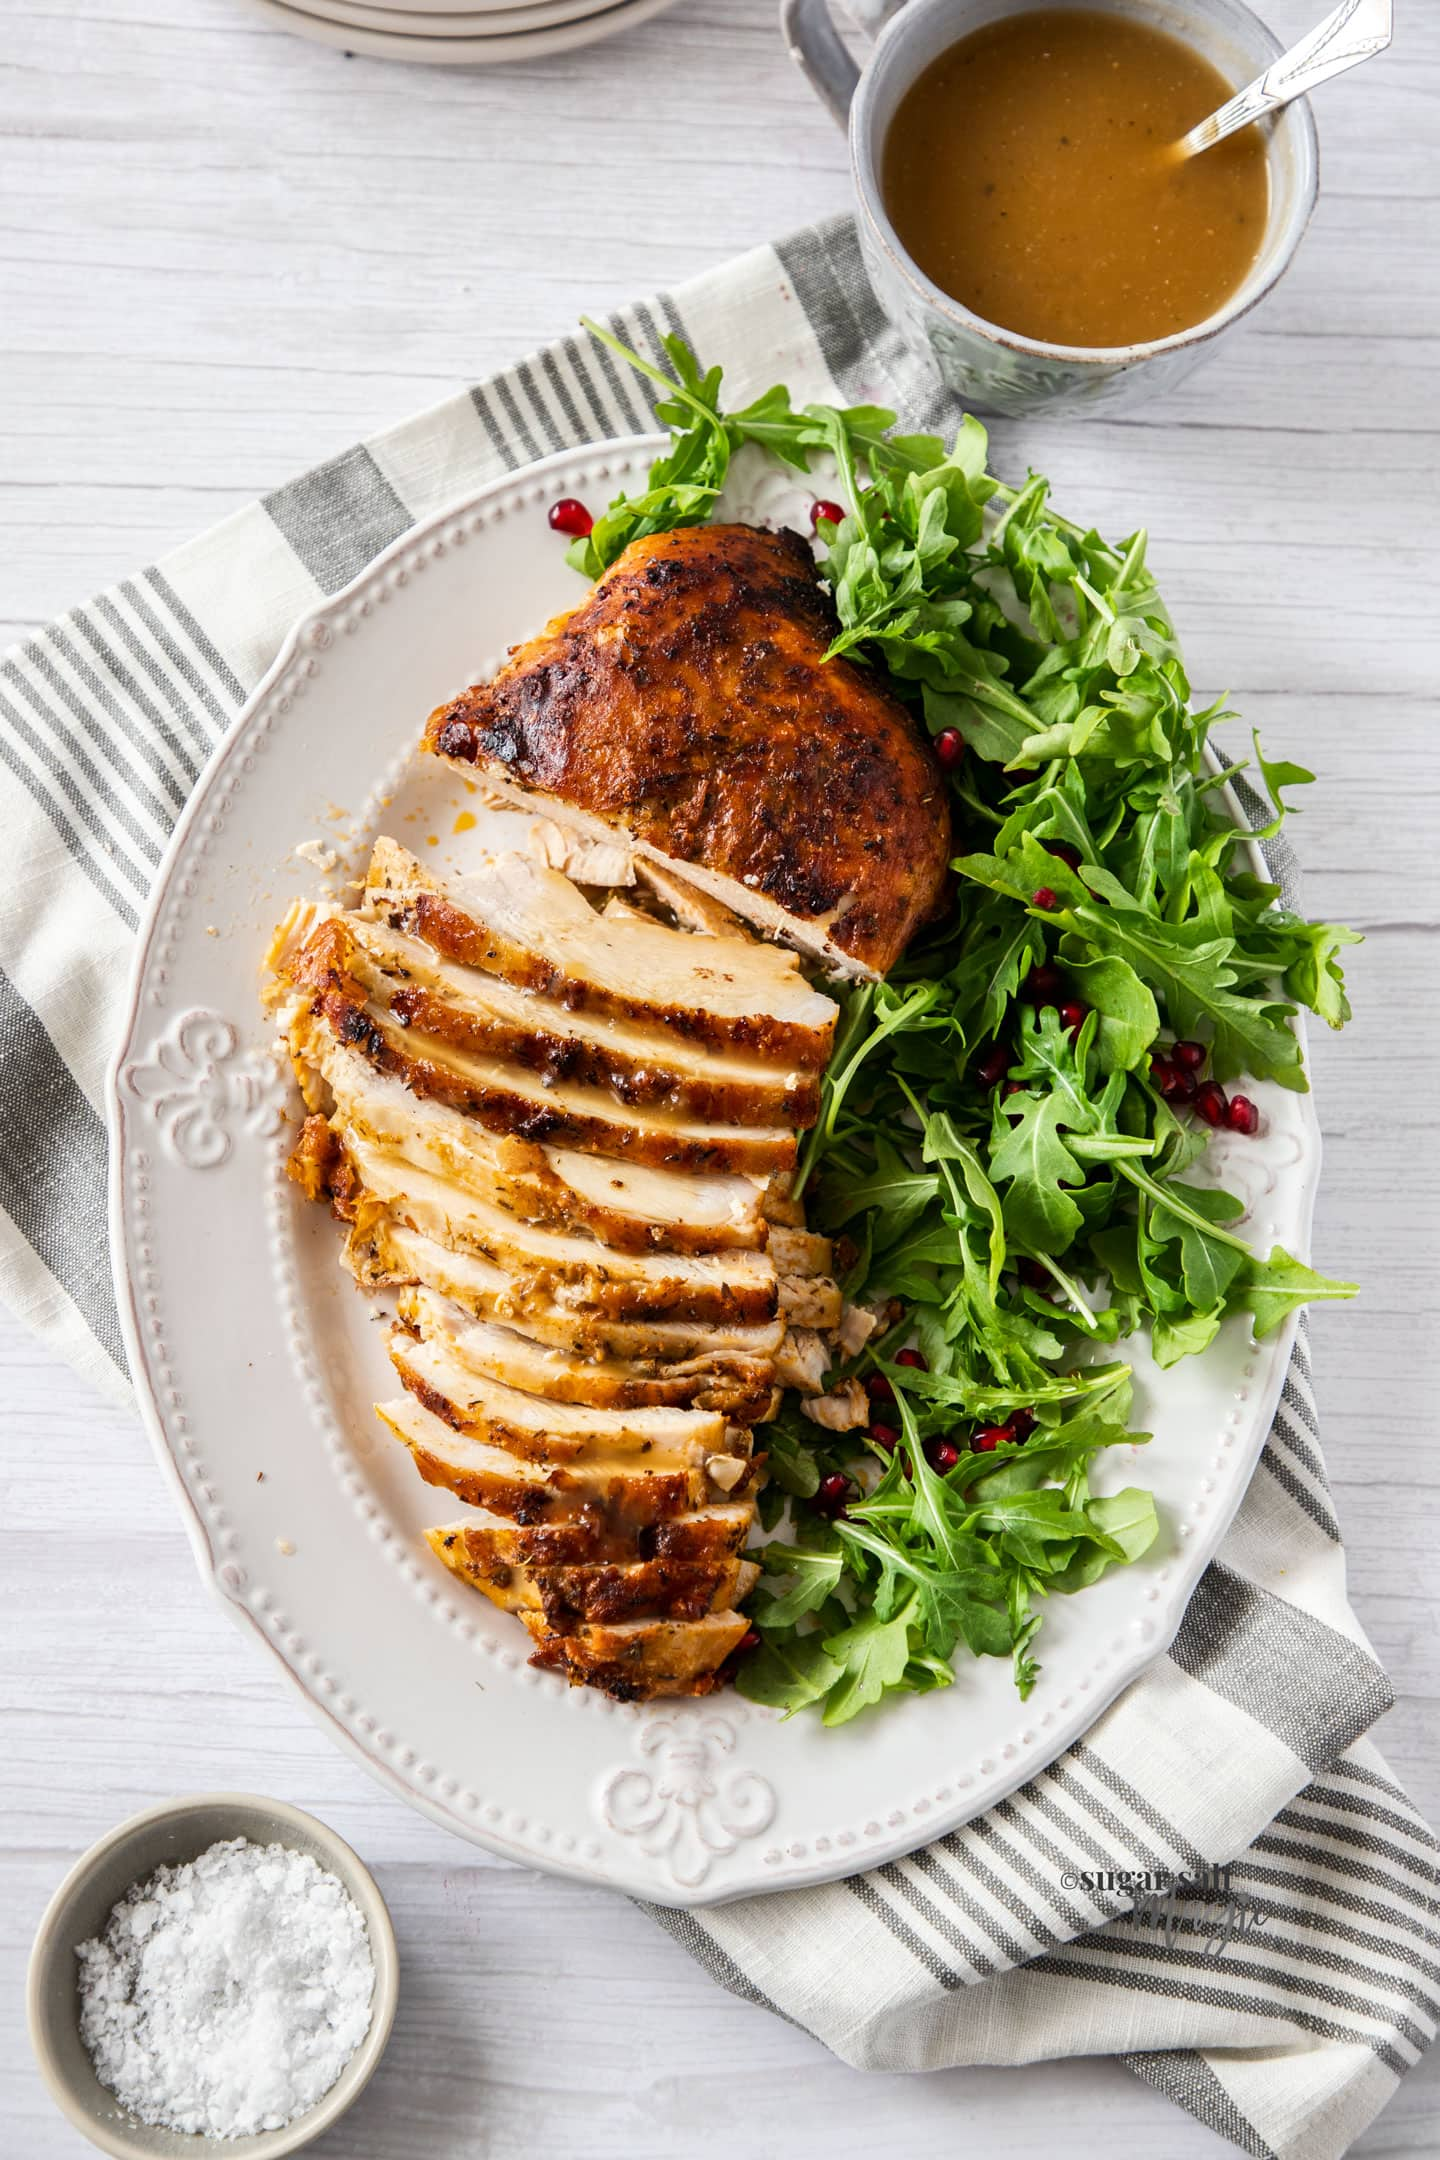 A golden turkey breast on a plate, partly sliced, with green salad on the side